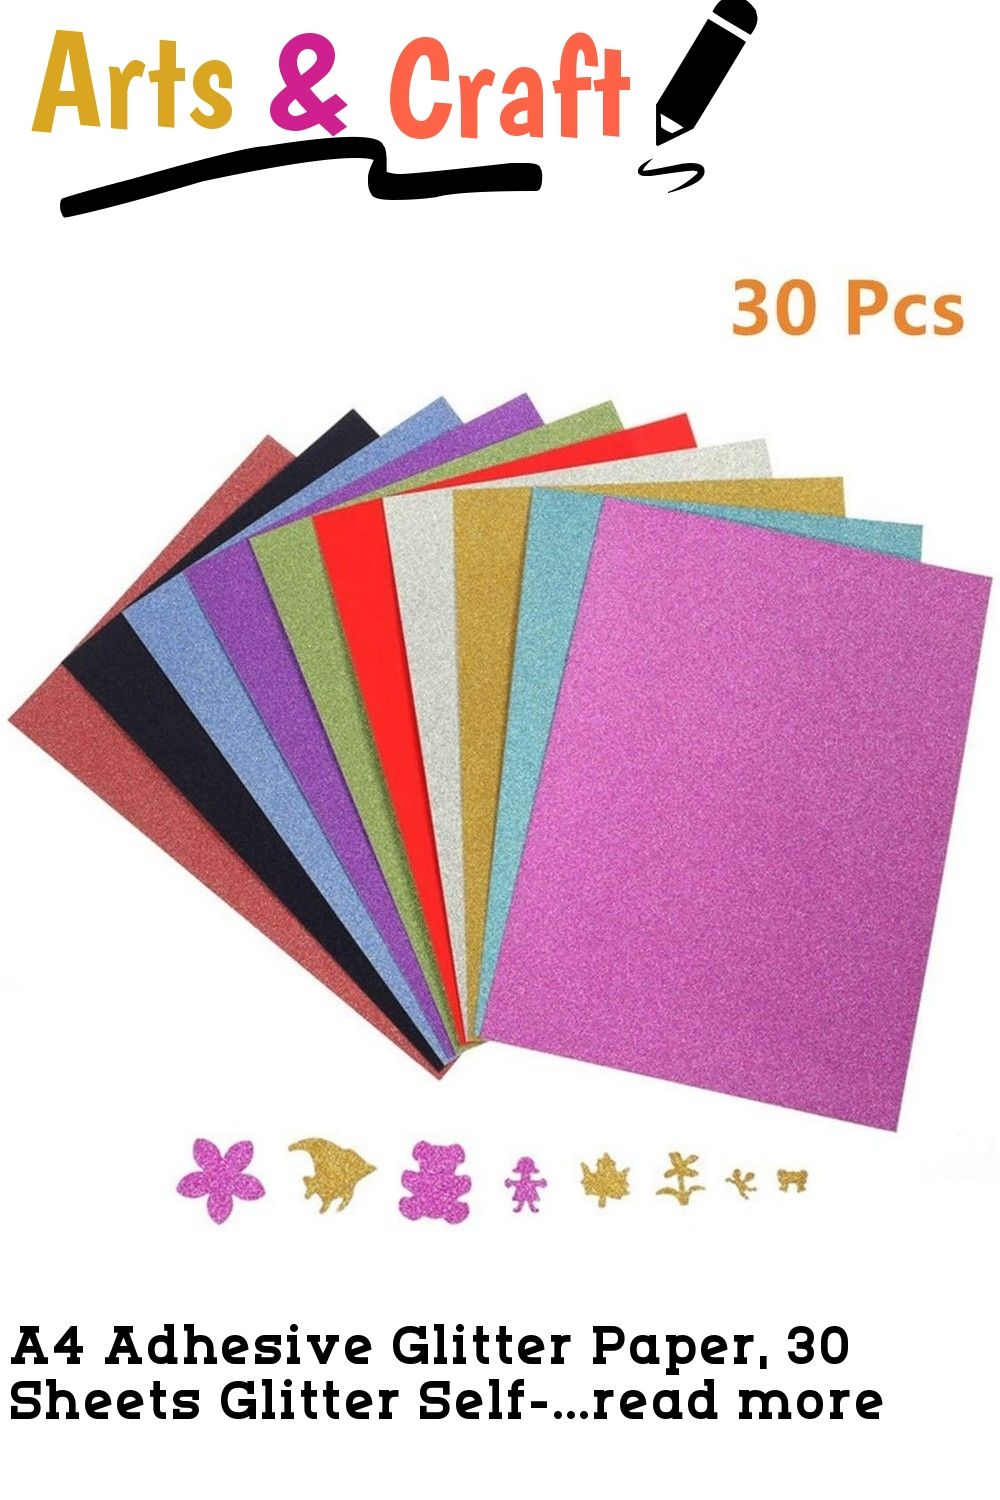 10PCS A4 Glossy Self Adhesive Sign Making Vinyl Outdoor Sticky Back Print Cutter